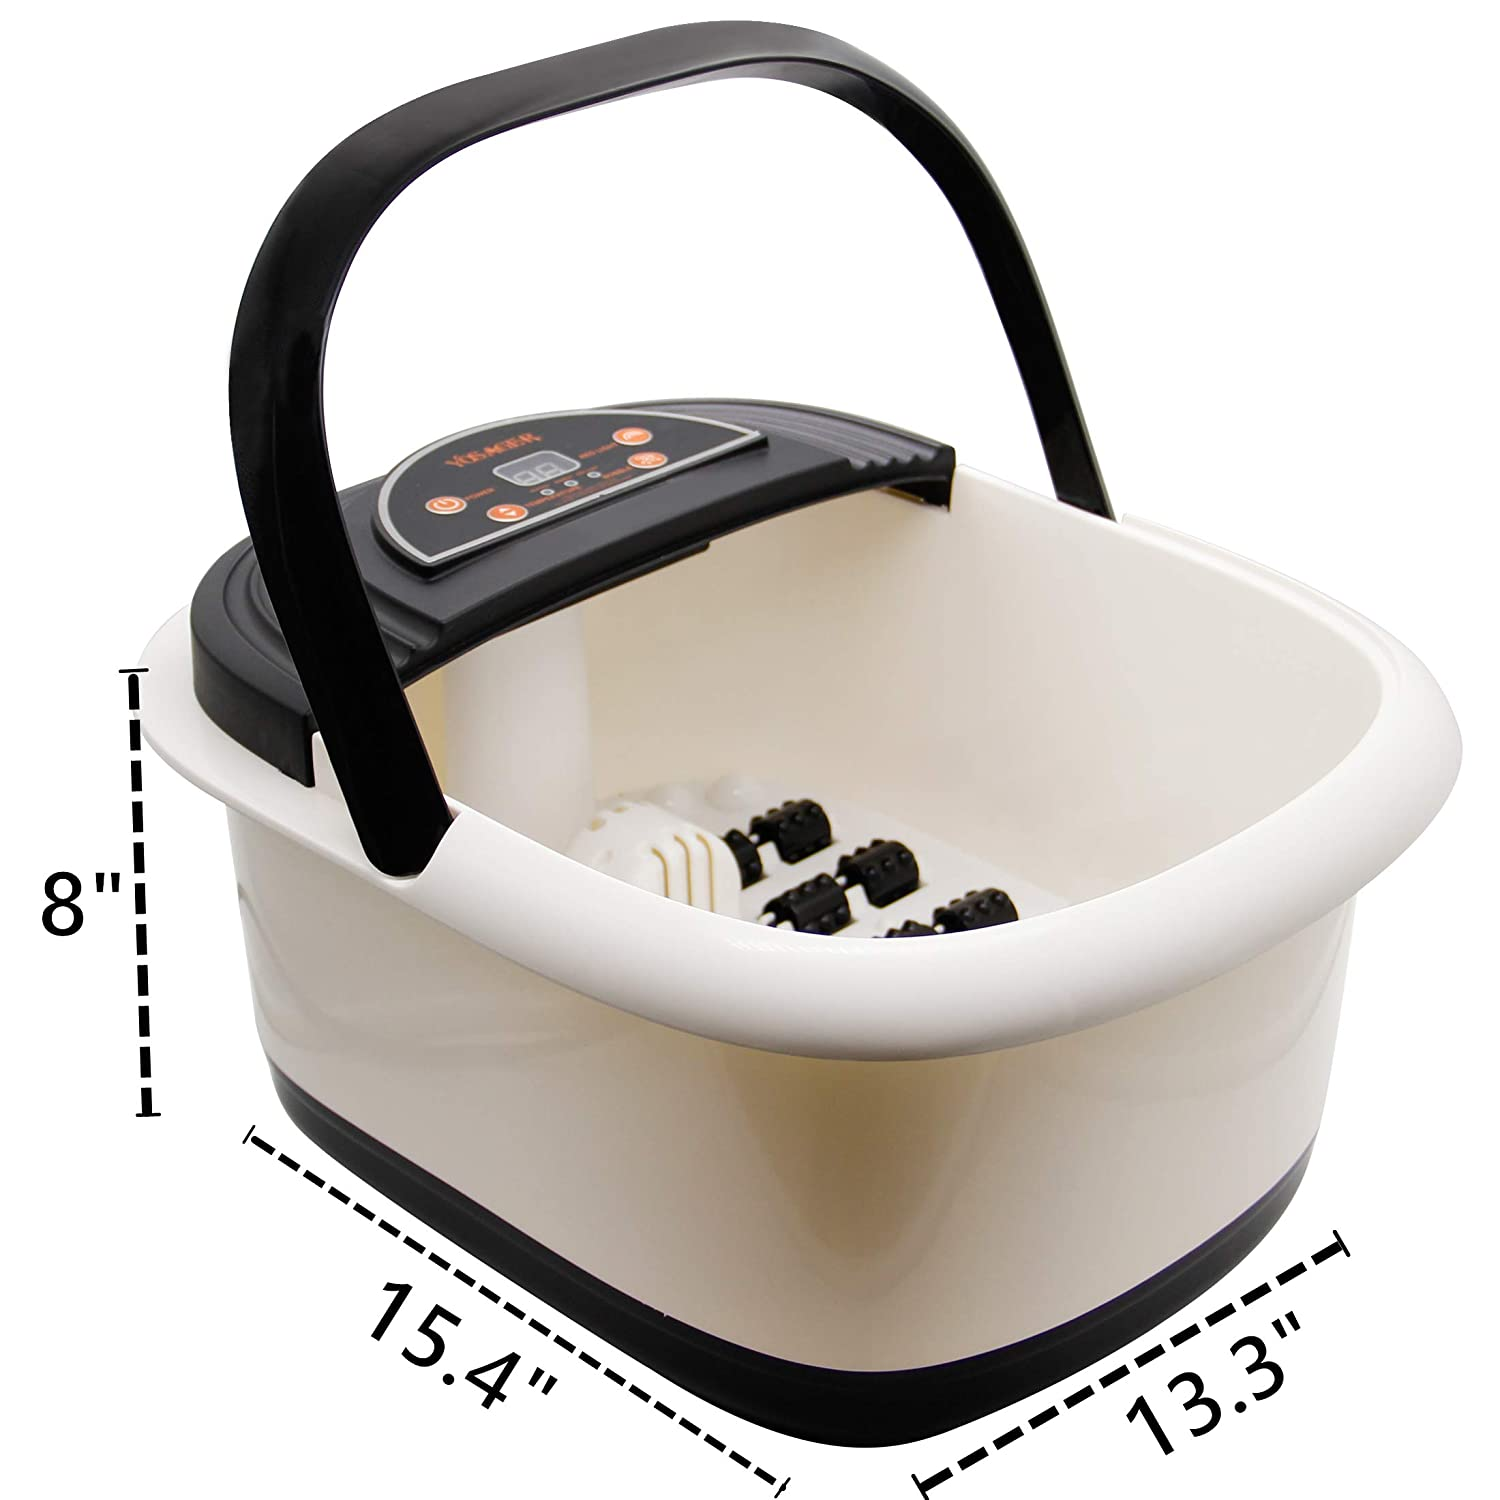 yosager Foot Bath Spa with Heat, Bubbles Jets, Foot Massager with Digital Temperature Control, Infrared Relieve Stress, Pedicure Spa, 20 Massage Rollers: Beauty